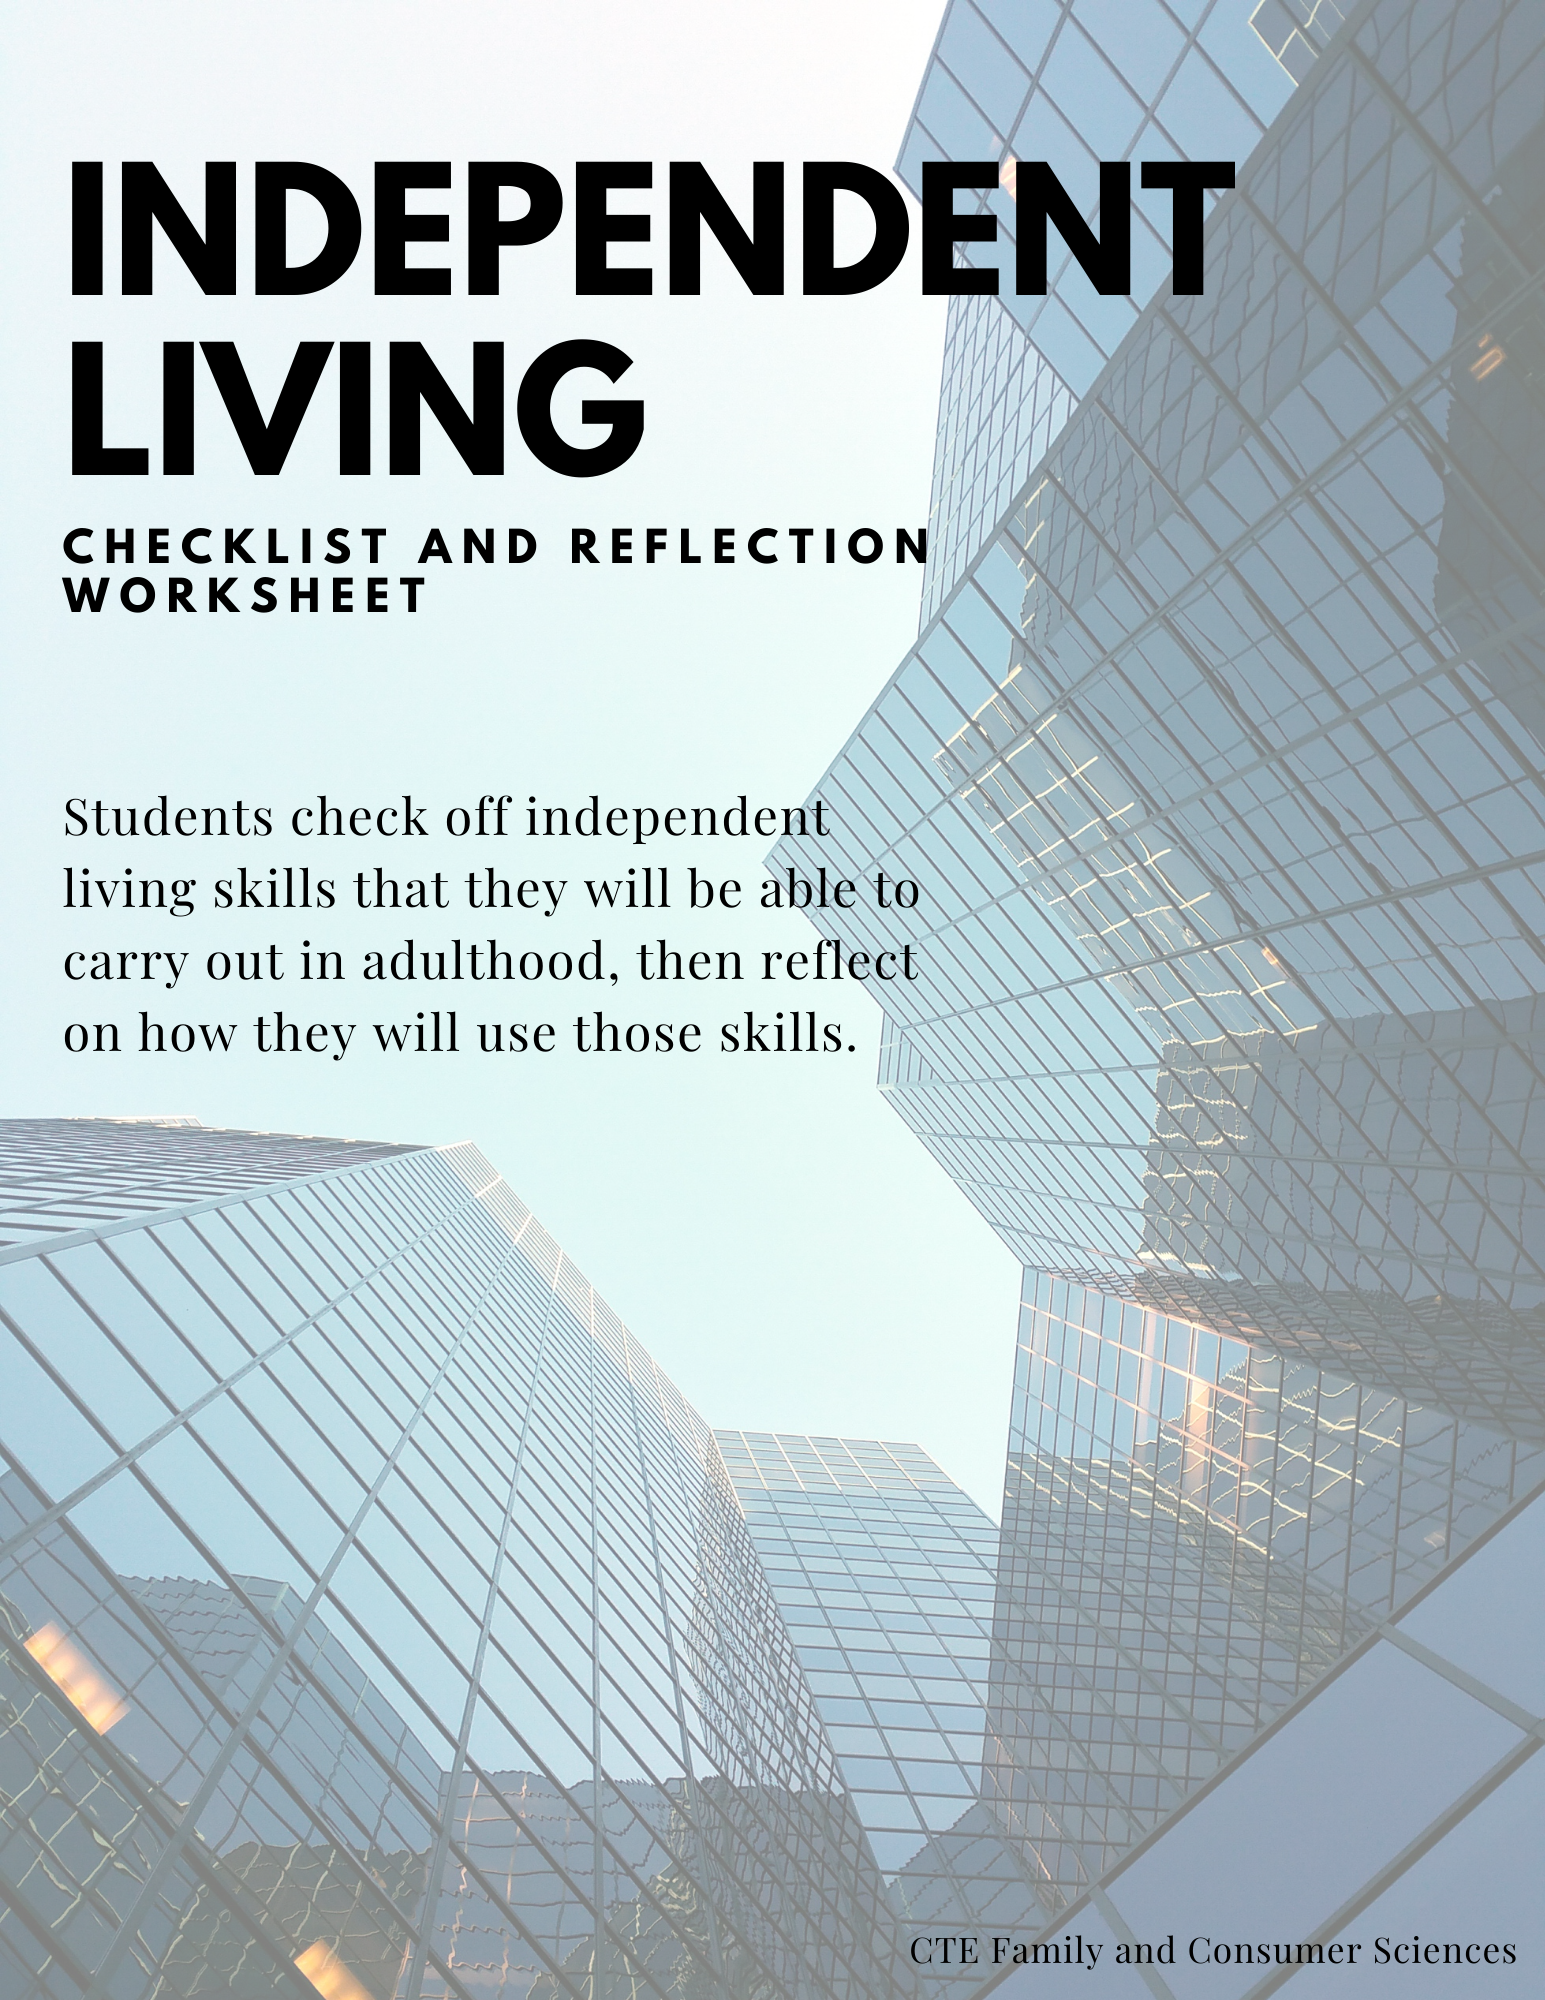 Independent Living Checklist And Reflection Worksheet In